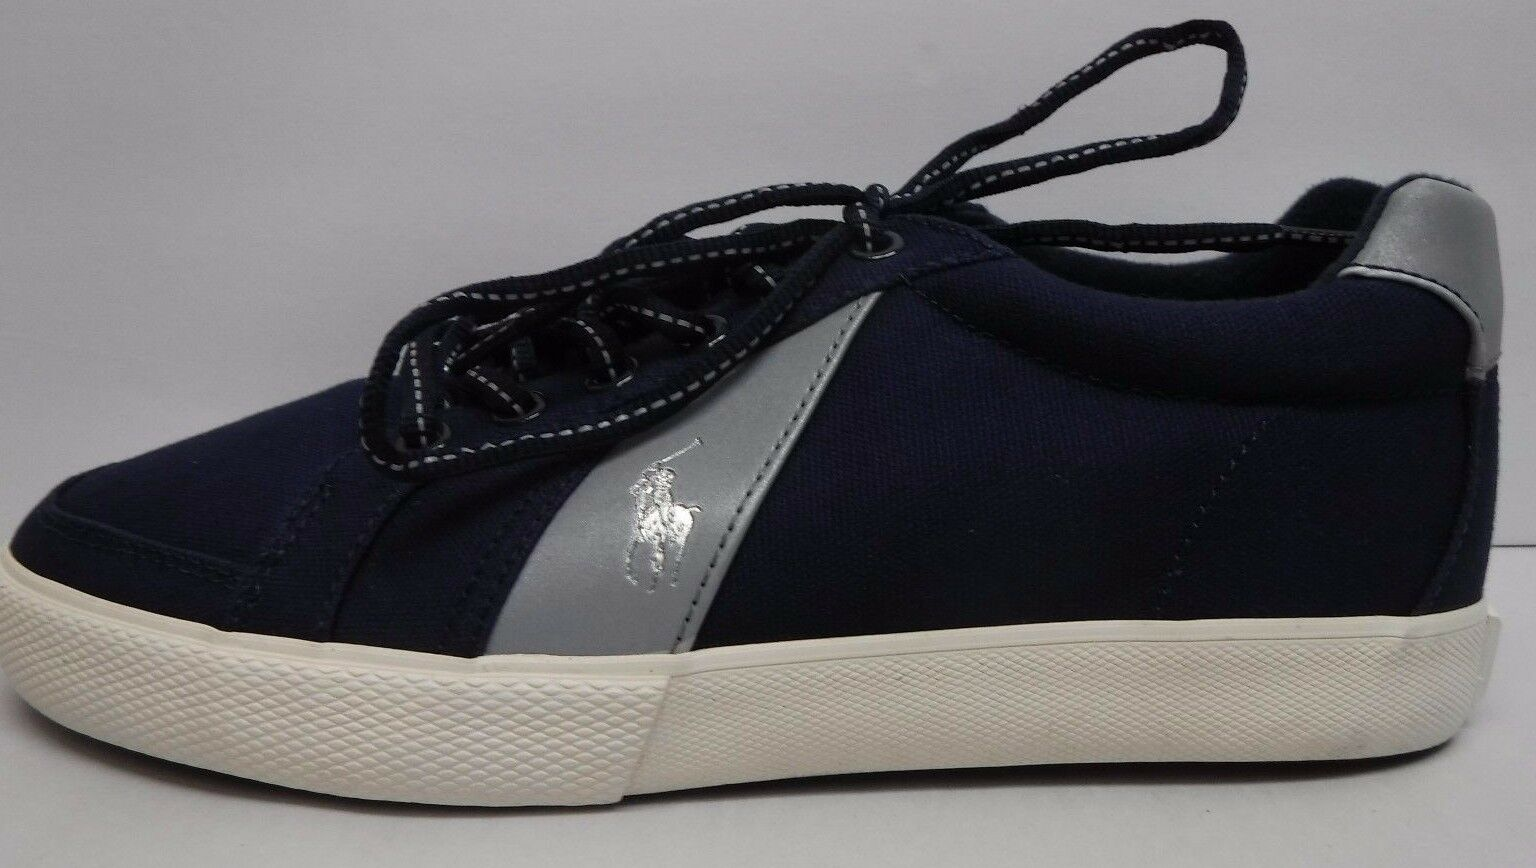 Polo Ralph Lauren Size 8.5 bluee Sneakers New Mens shoes